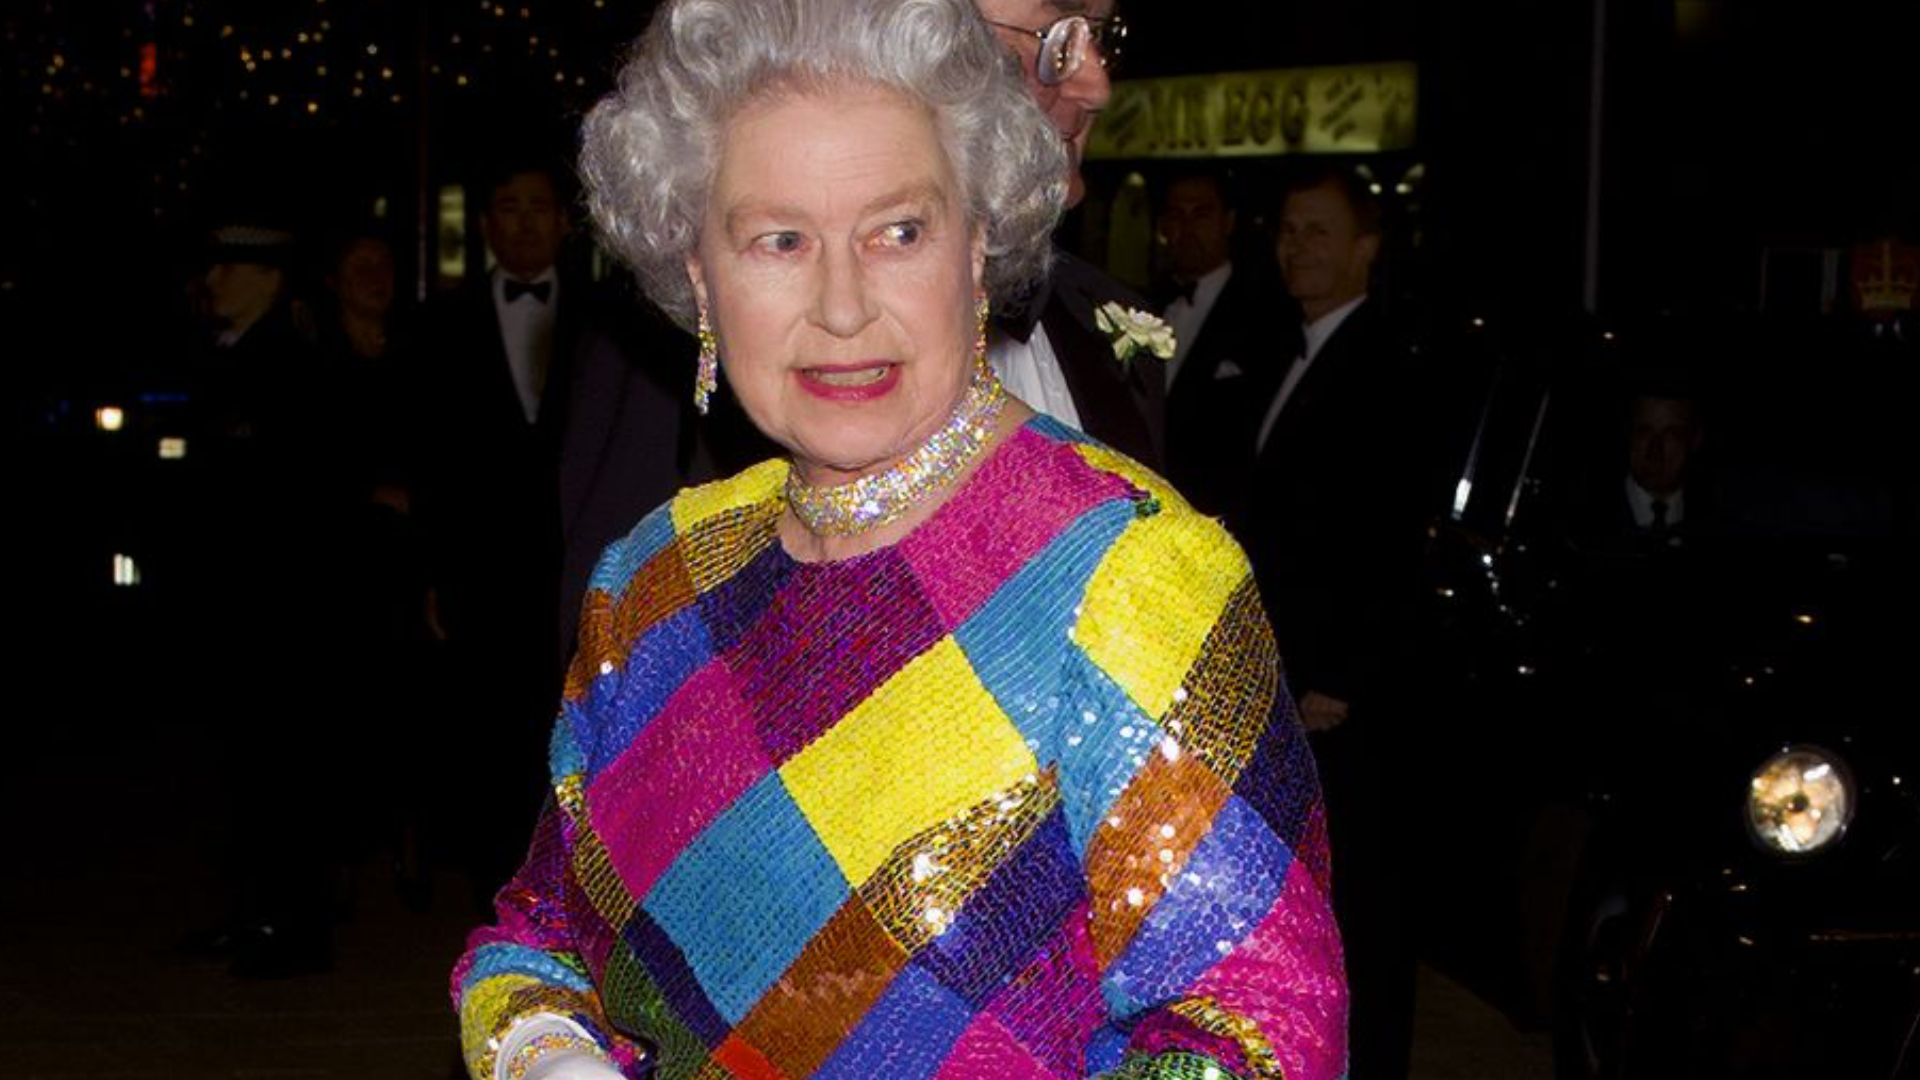 See Just How Much Queen Elizabeth's Style Has Changed Over the Years